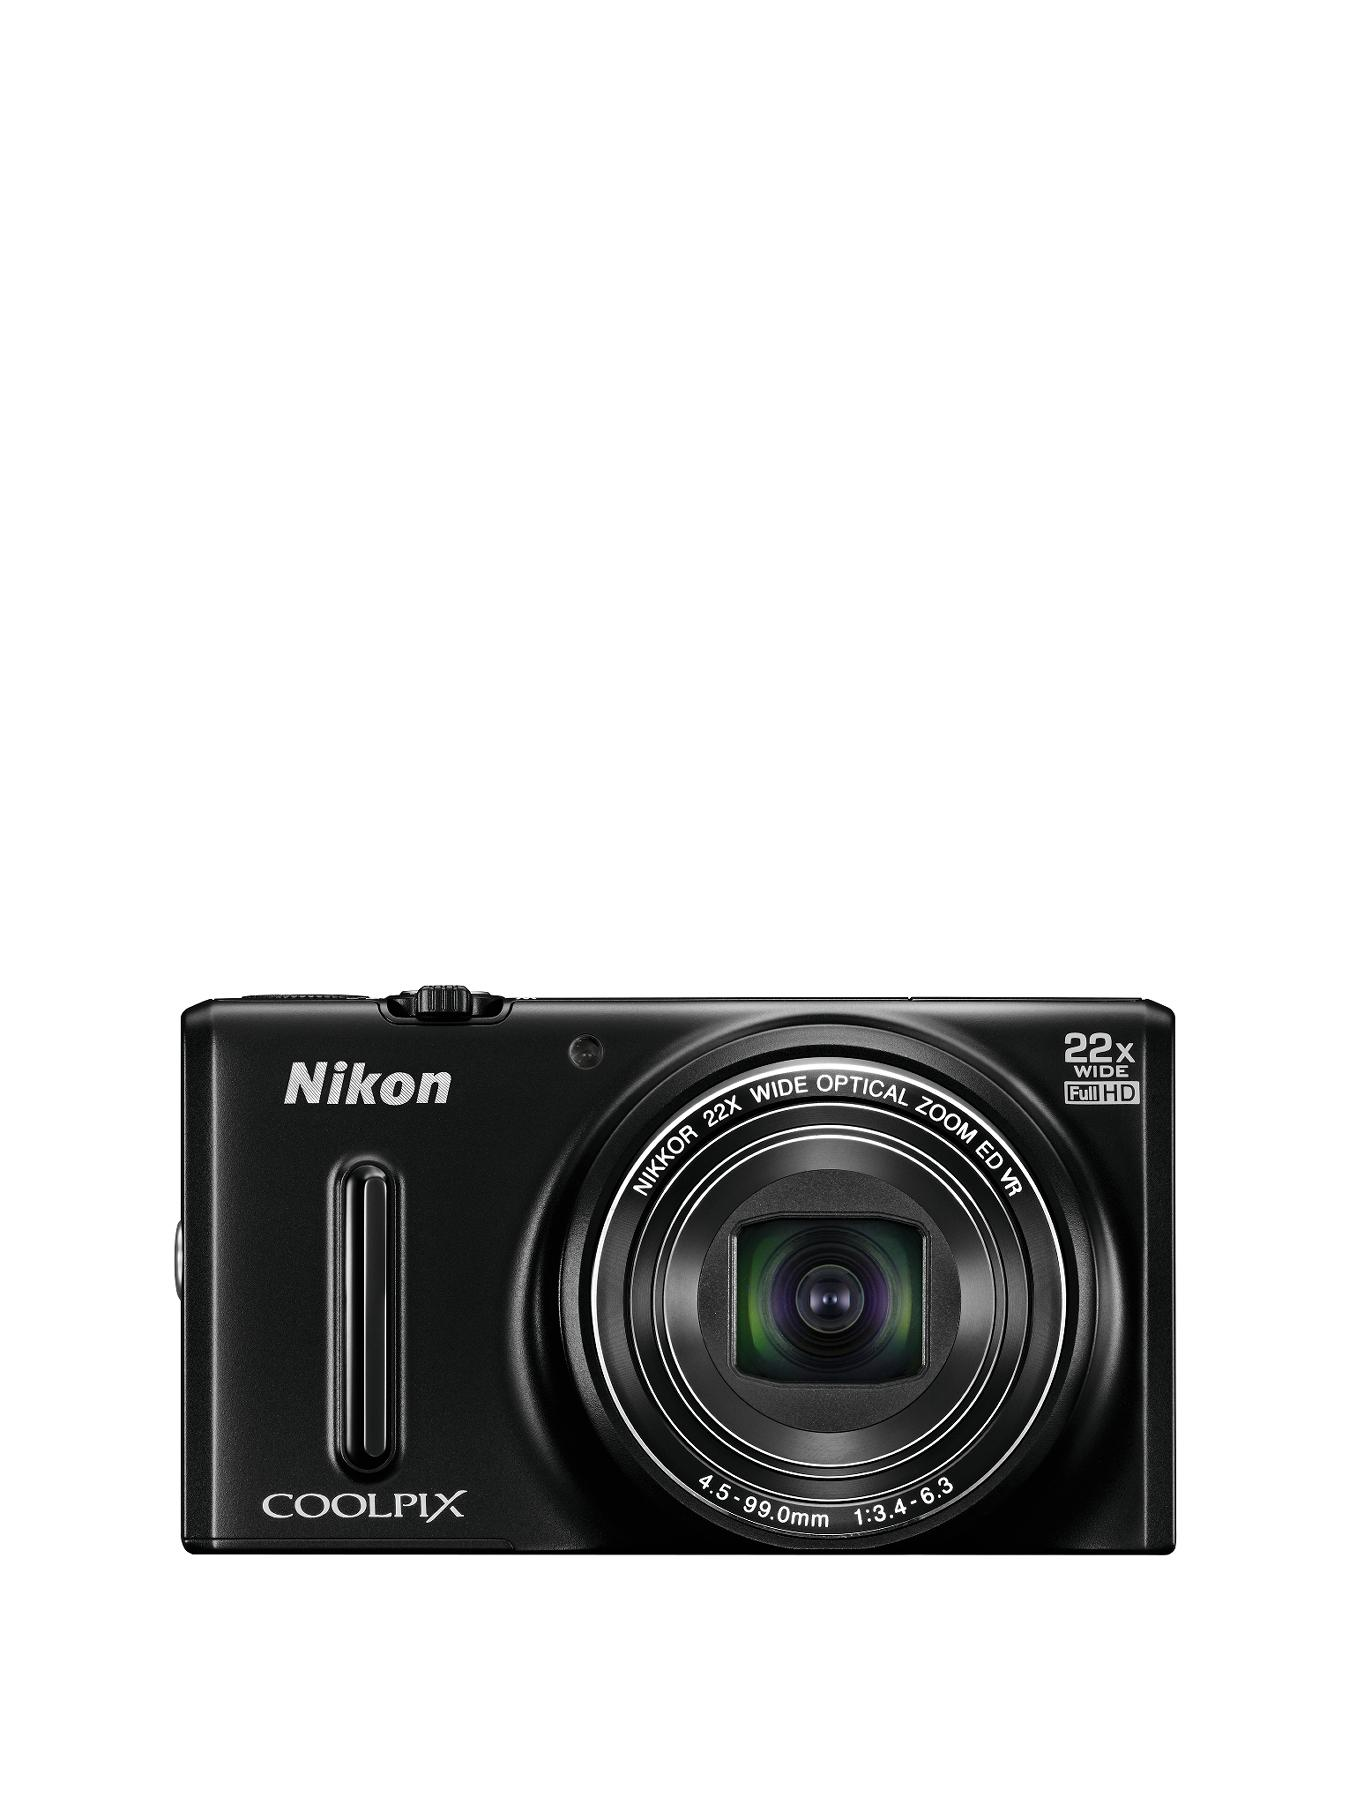 Nikon S9600 16 Megapixel Digital Camera - Black